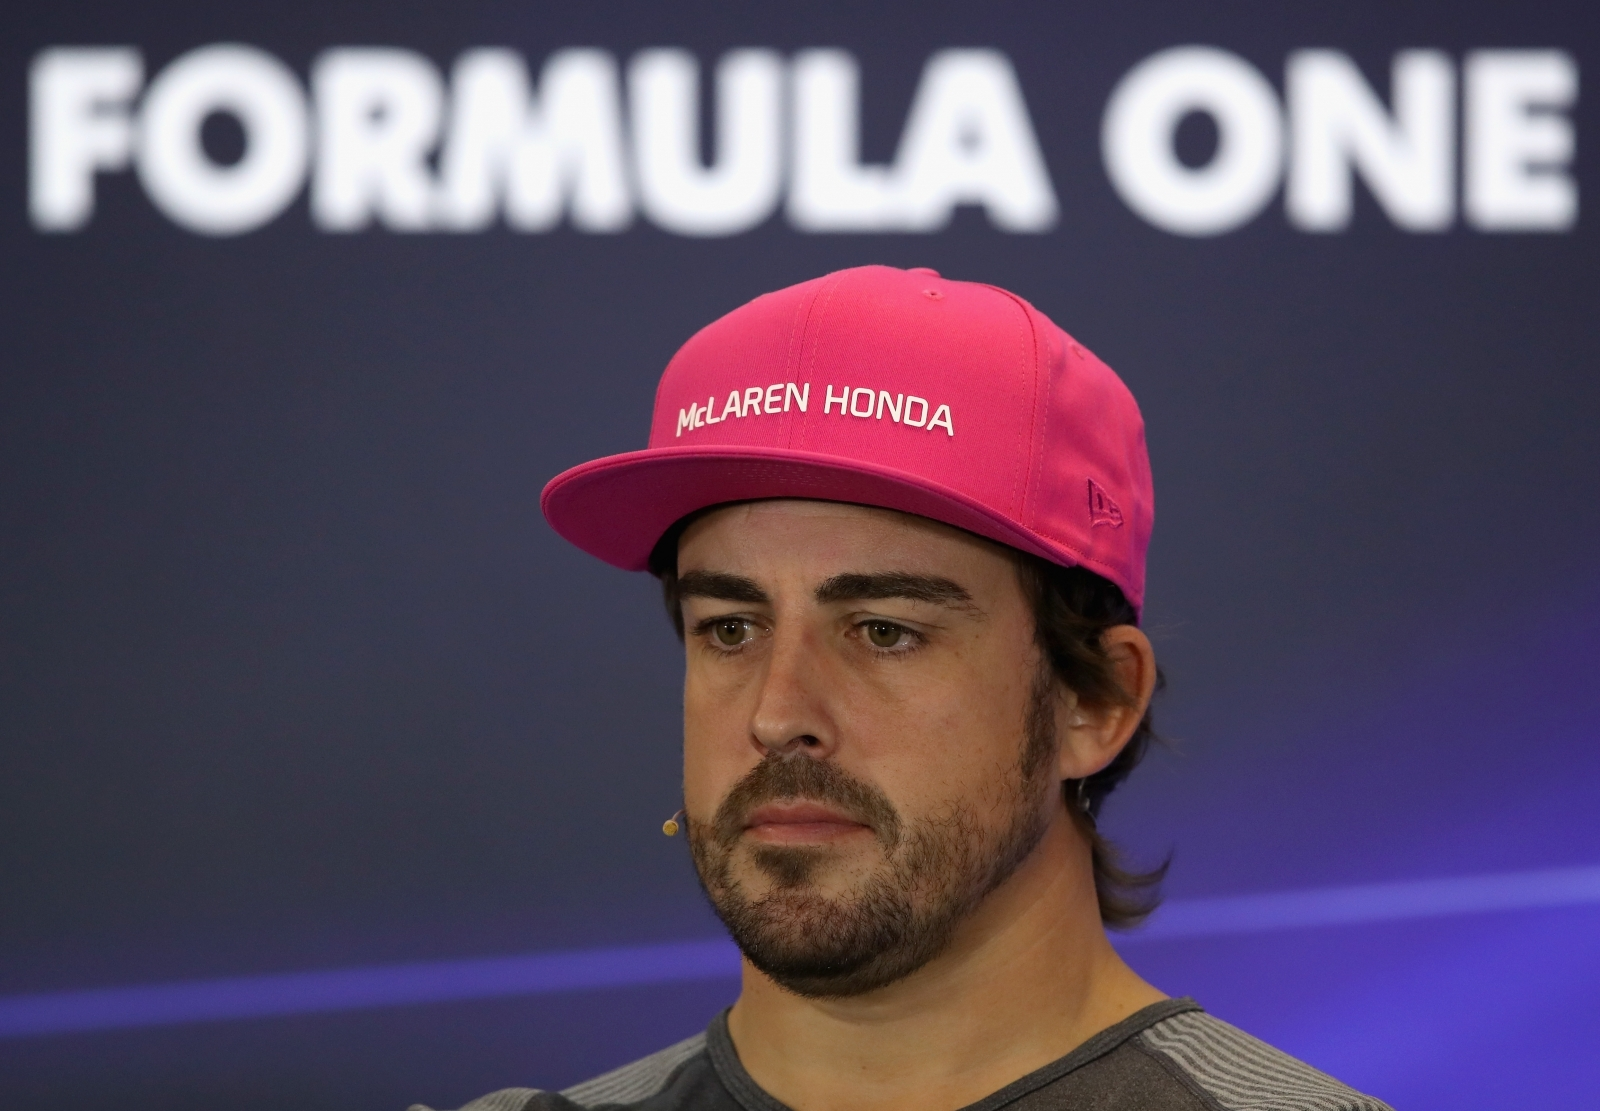 Fernando Alonso reveals shock plans just hours after signing McLaren contract